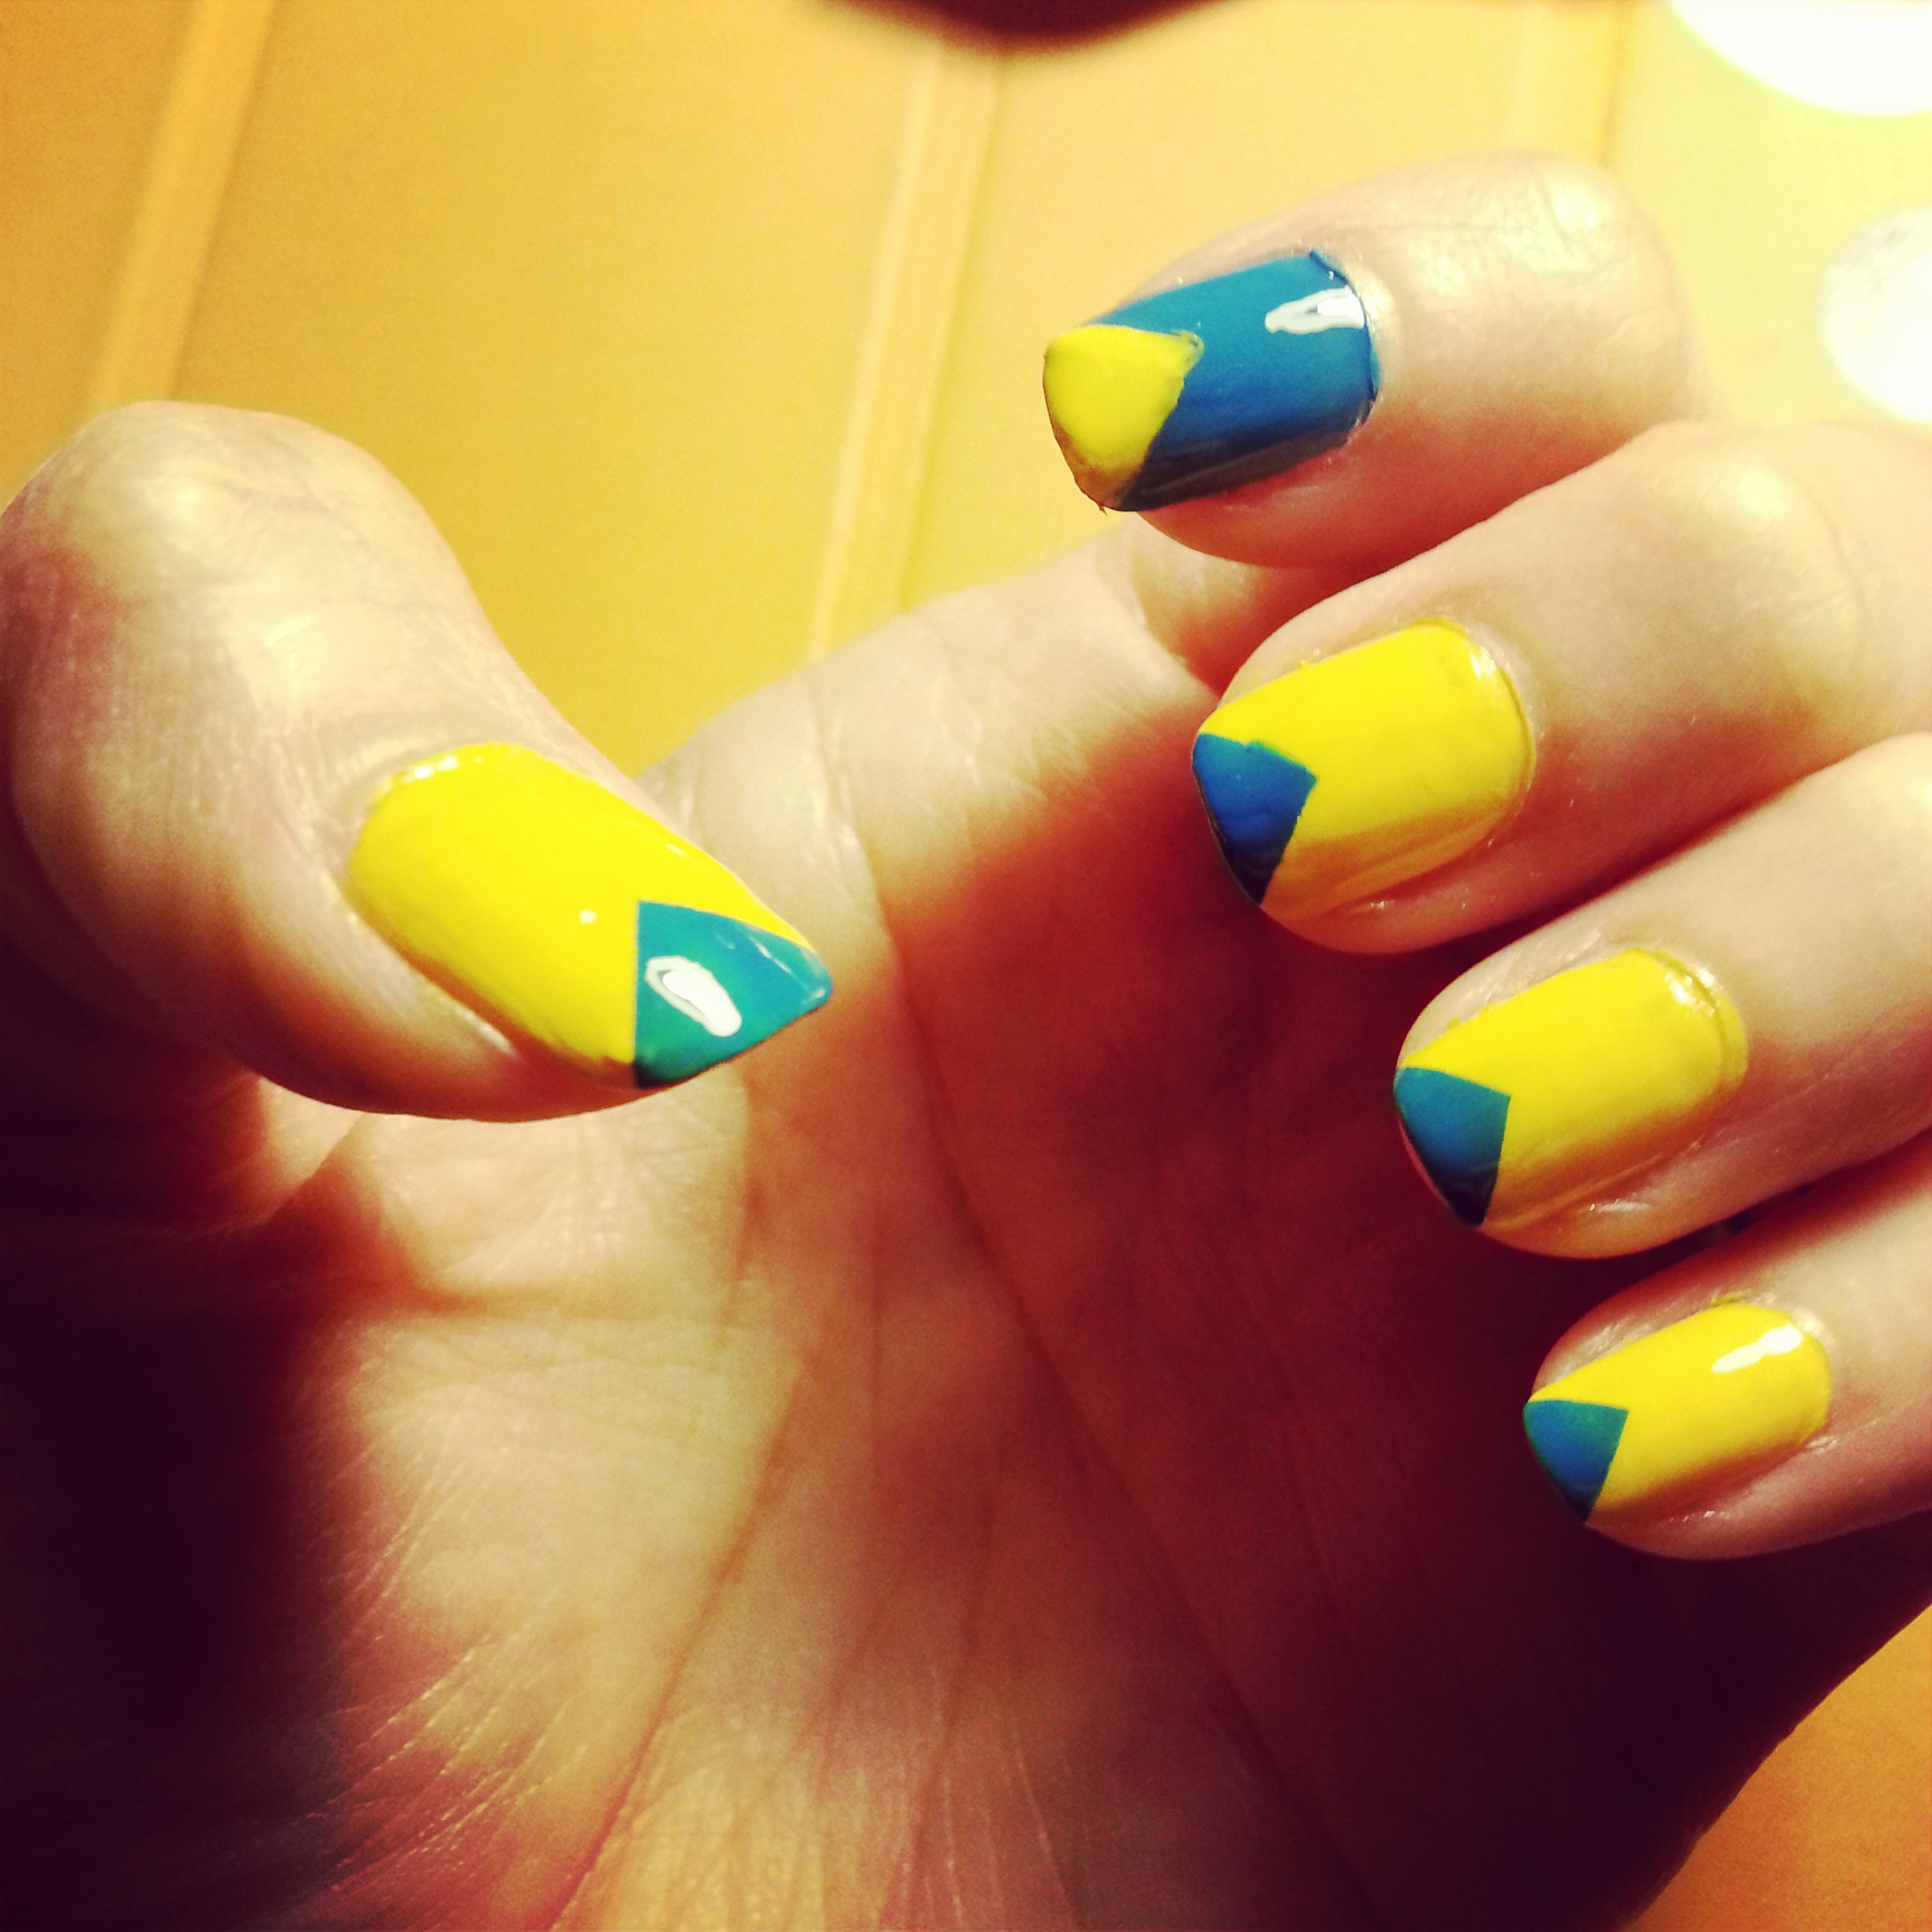 Simple Blue & Yellow Triangle Nail Art Tutorial | munkie VS the world